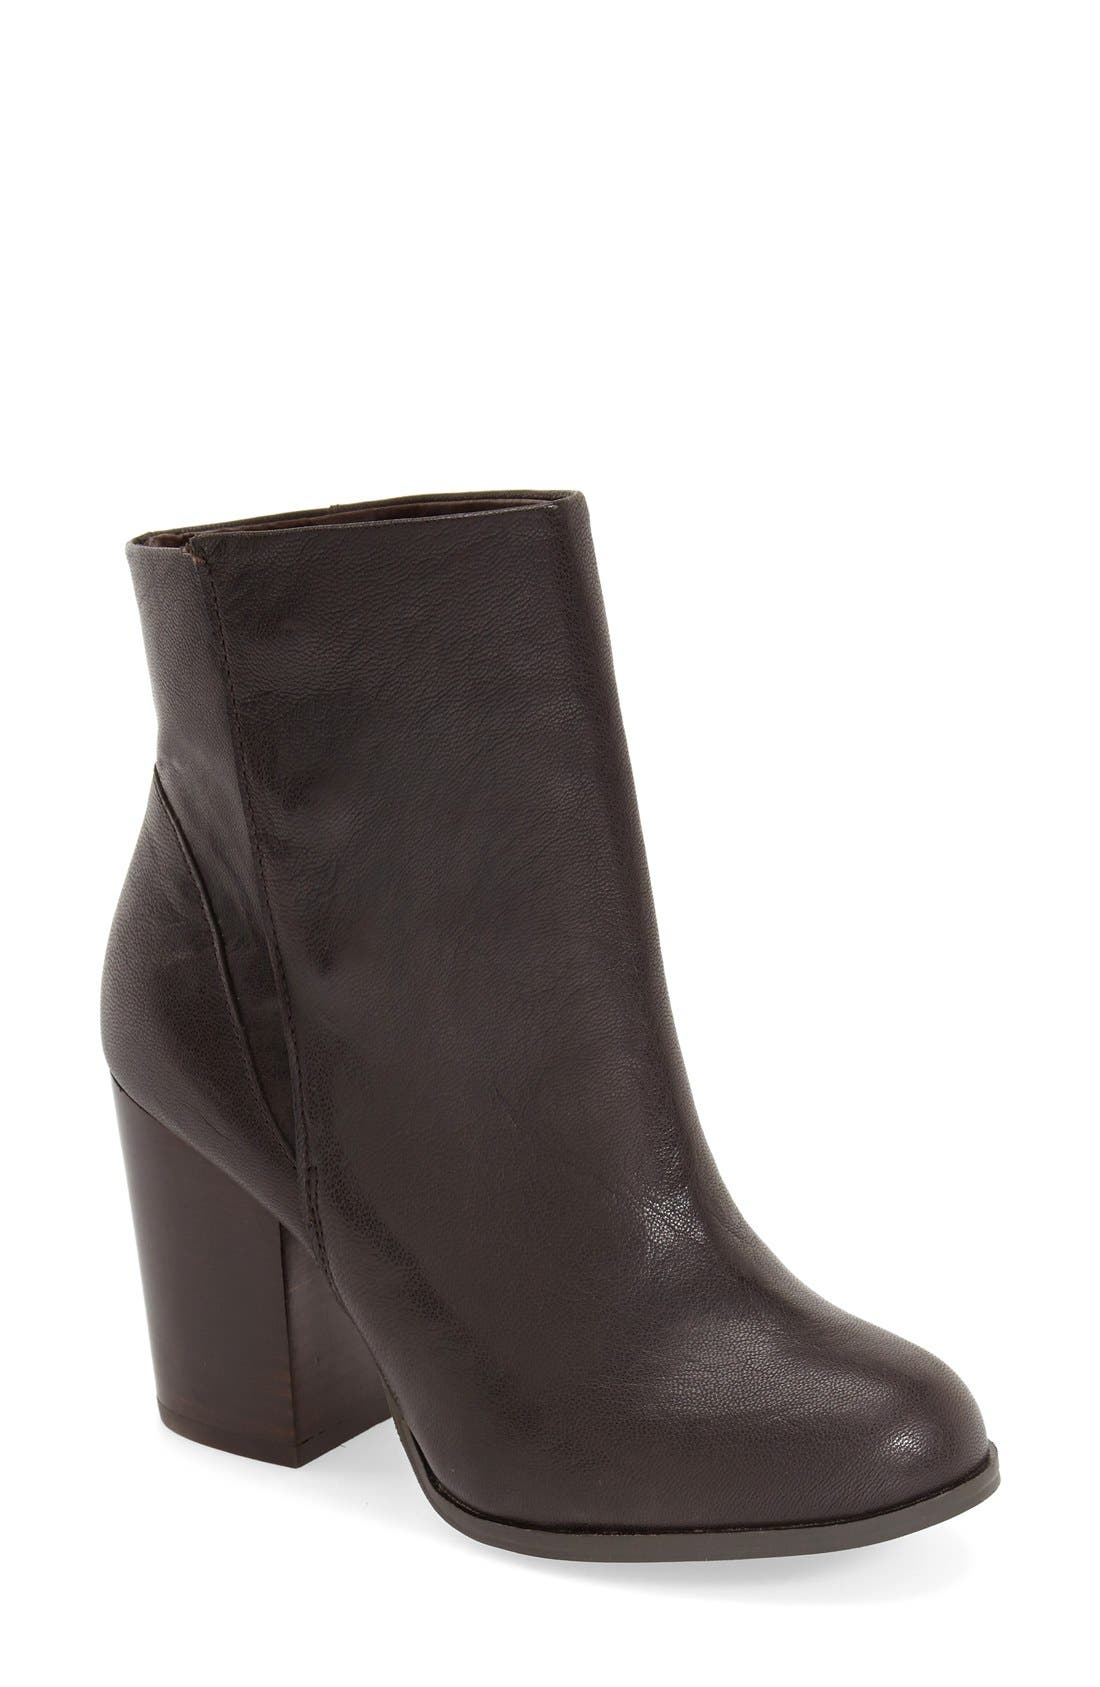 Alternate Image 1 Selected - Sole Society 'Henley' Bootie (Women)